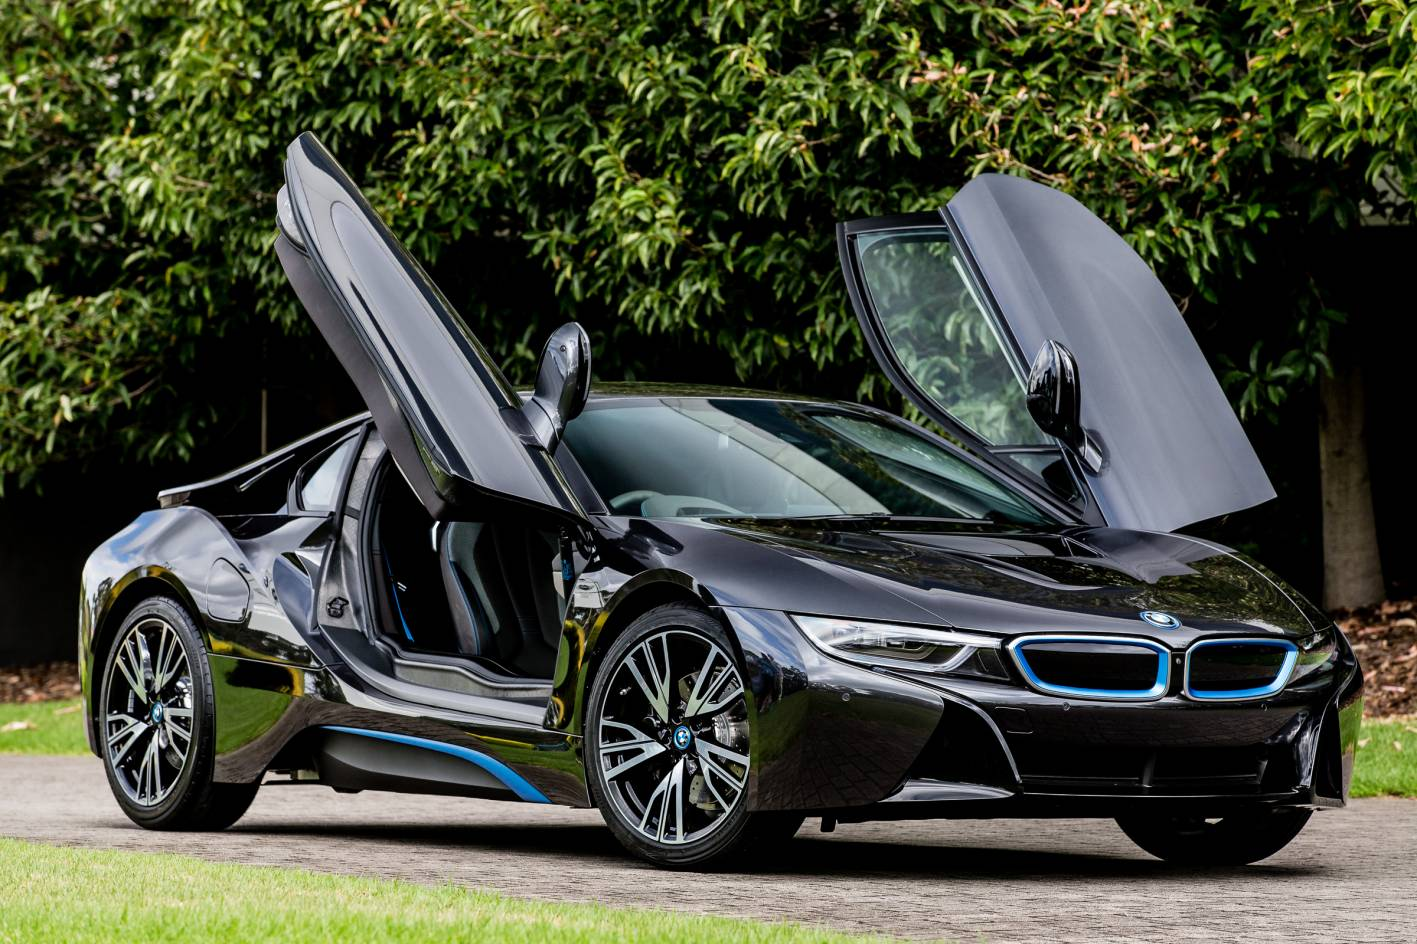 bmw i8 doors open. Black Bedroom Furniture Sets. Home Design Ideas